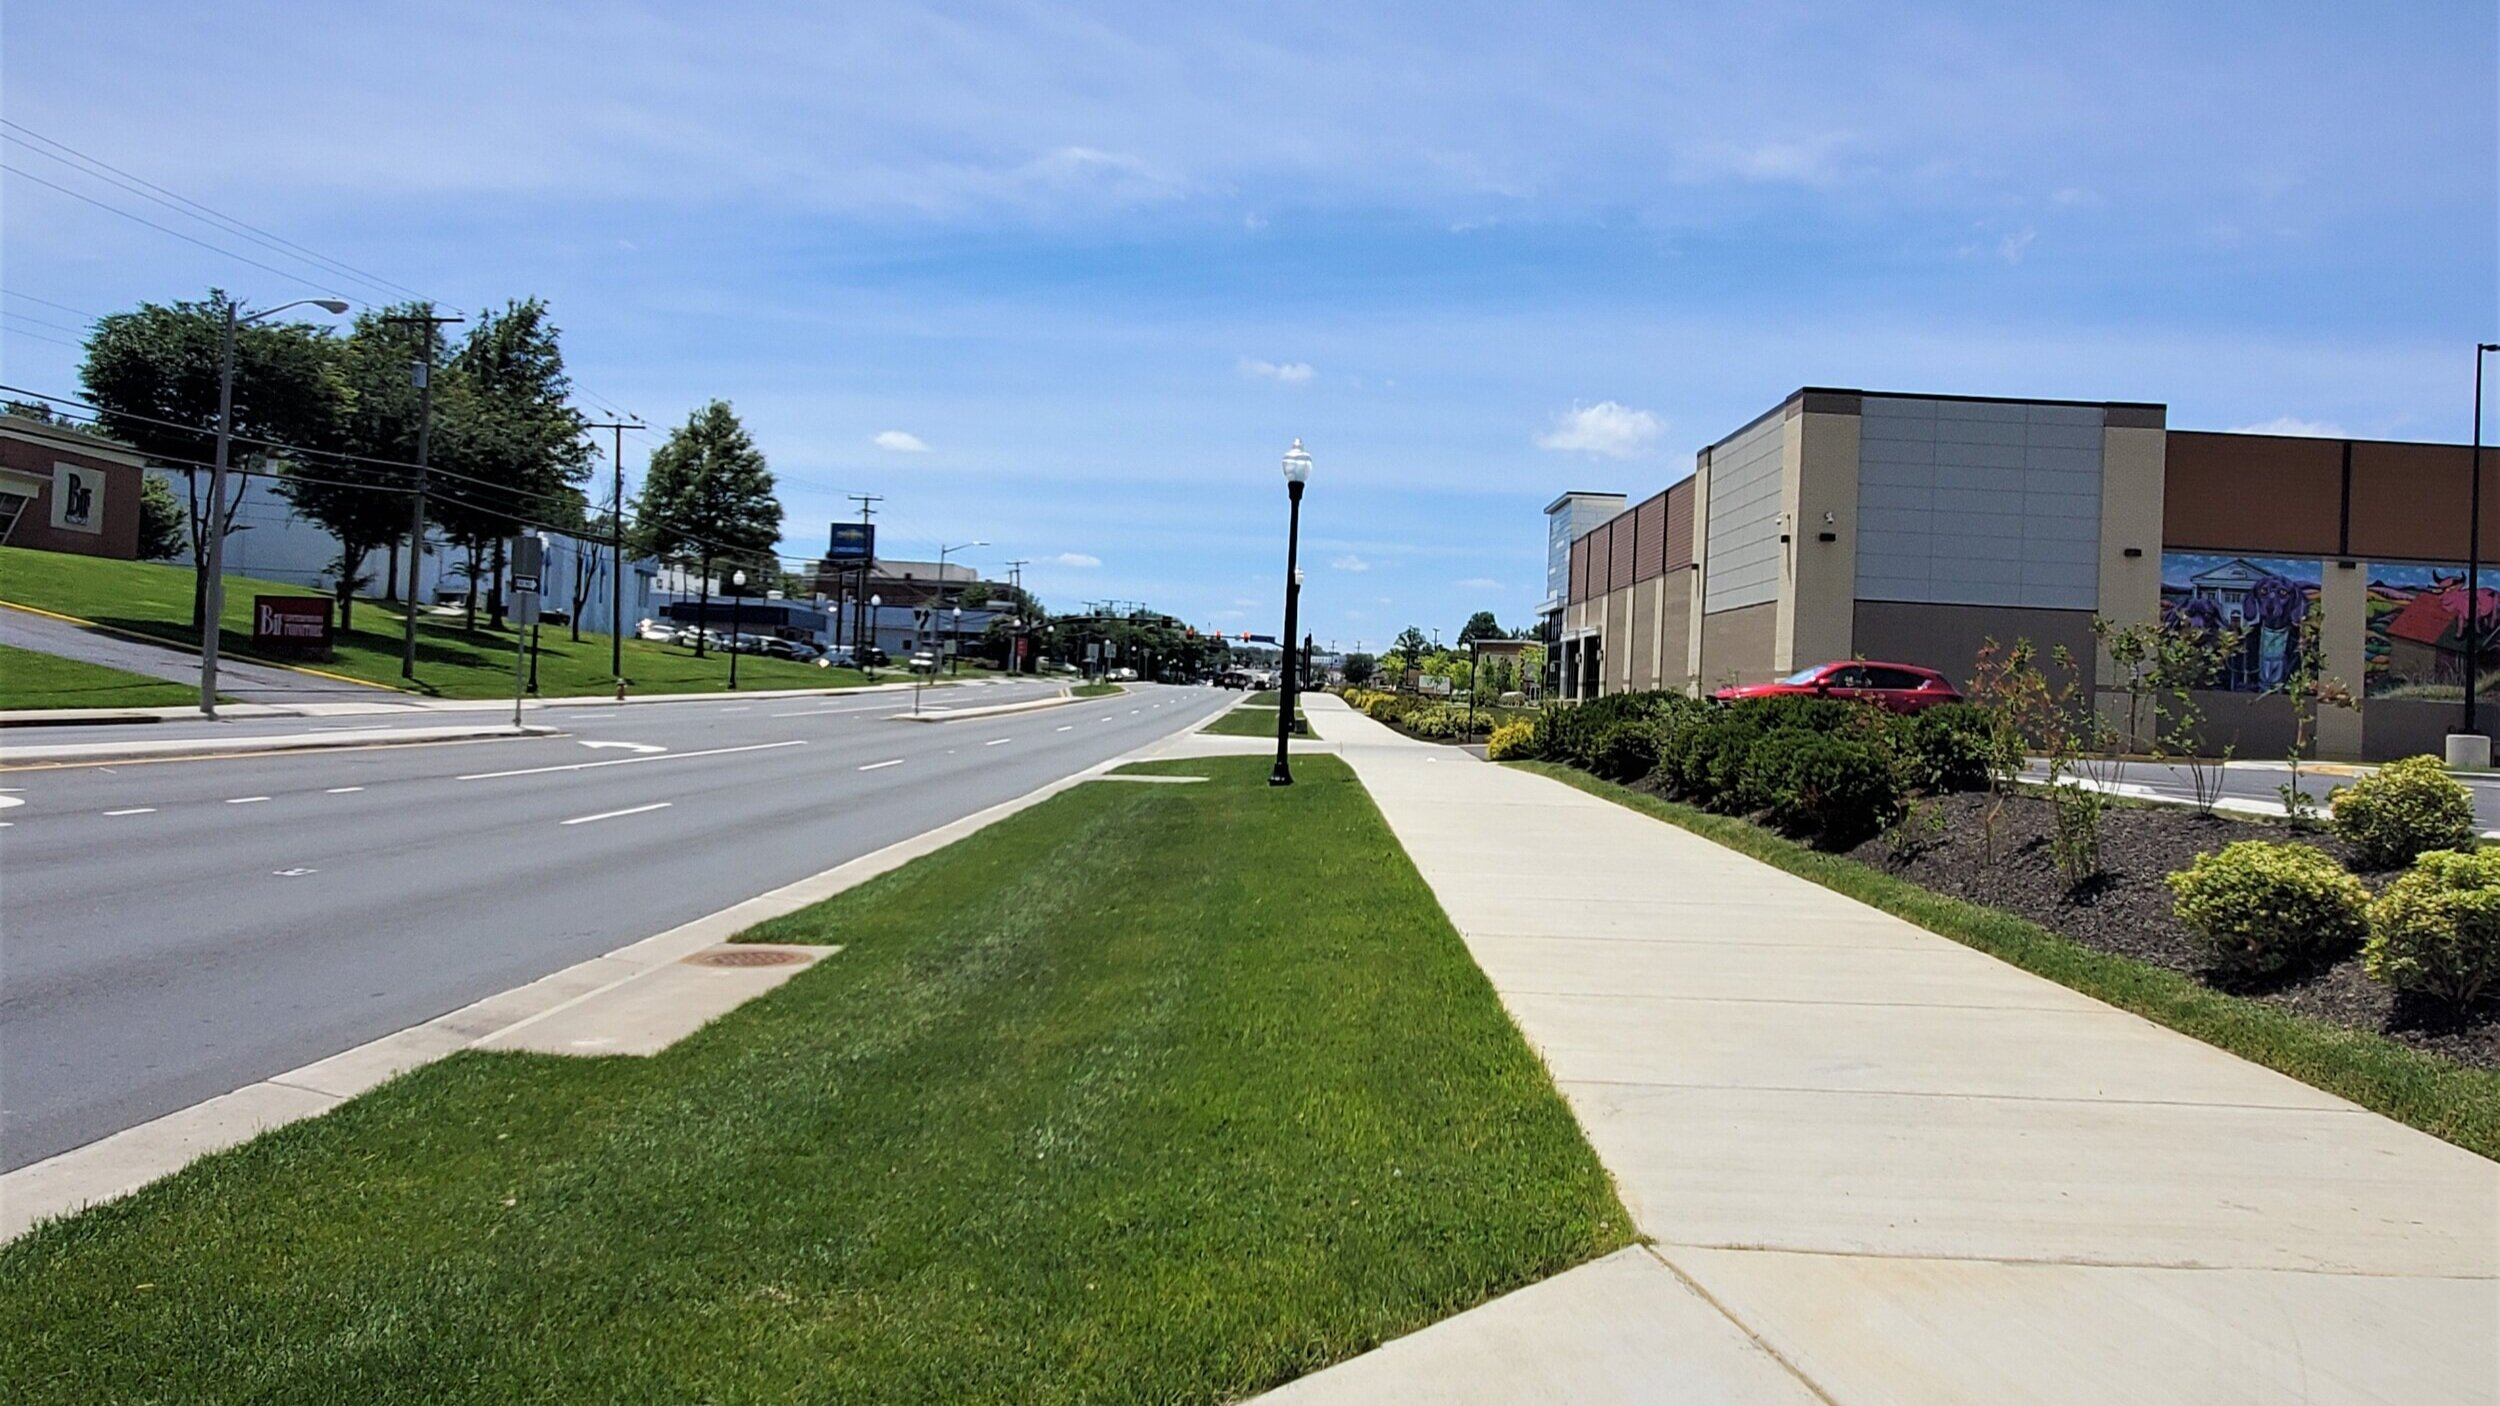 One of two very recent sidewalk segments in front of new developments. It may look similar from the road, but the additional buffer produces a much improved pedestrian experience.